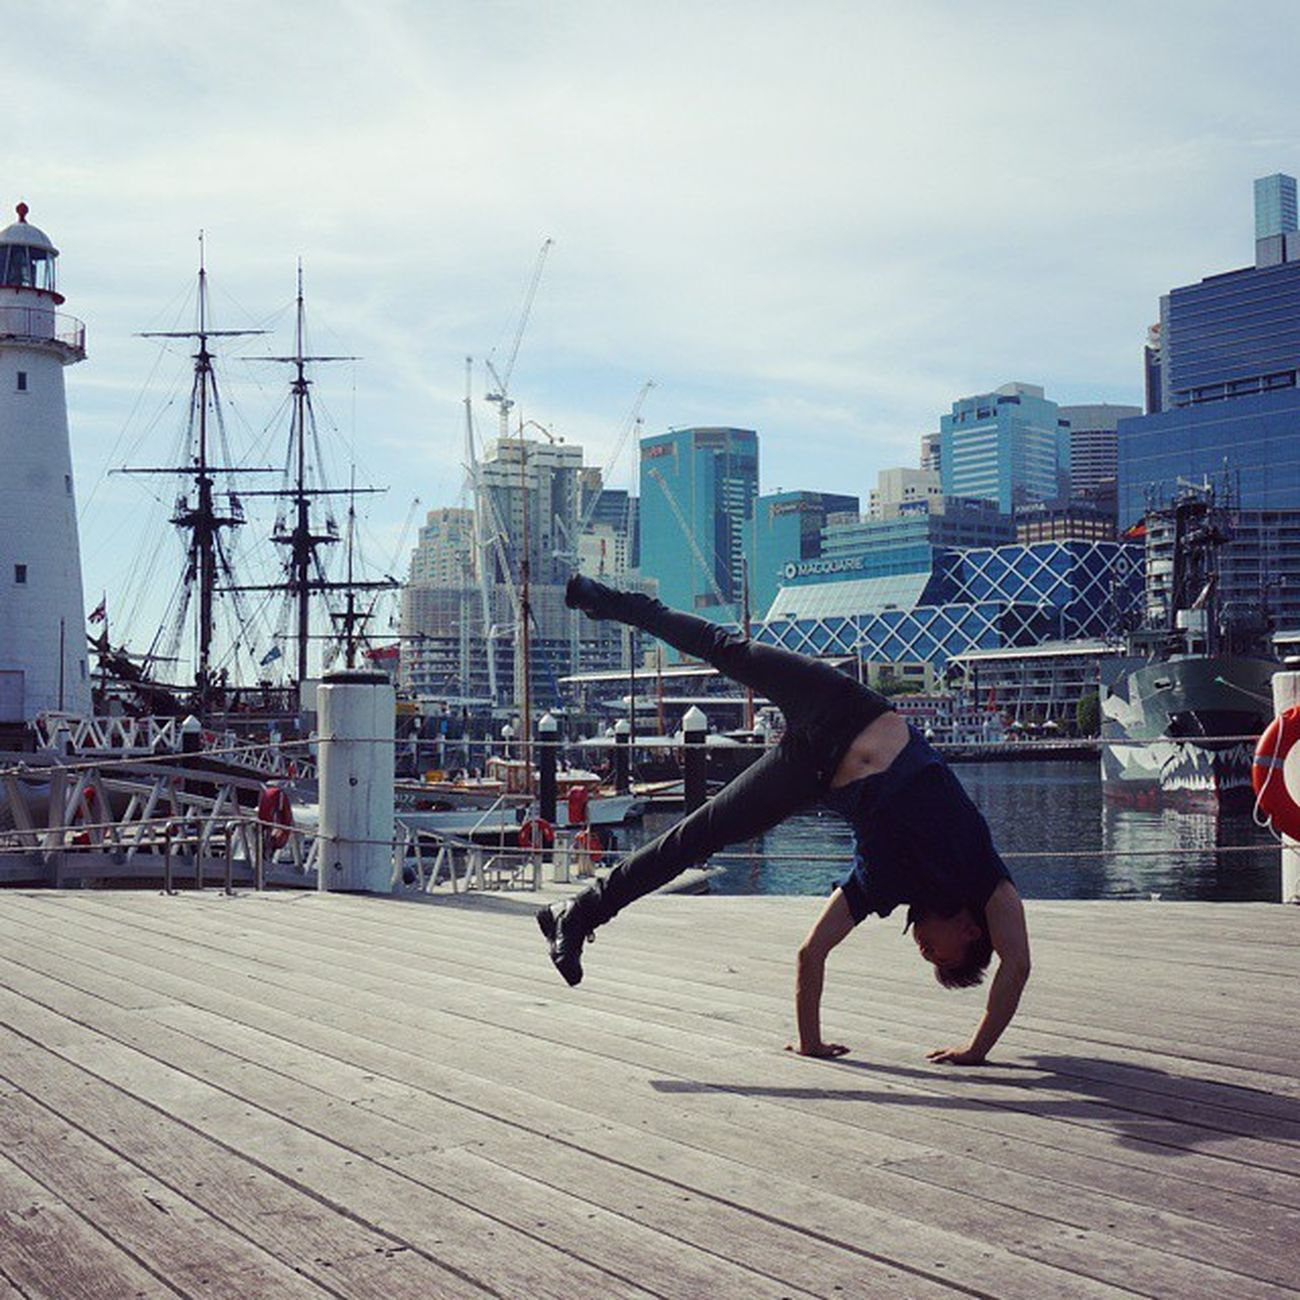 🔙 to the time spent at National Maritime Museum in Sydney! It's always fun to look for backdrops for freezes. Where would you choose as a backdrop for a freeze? Throwback Dance TBT  Calisthenics Strengthtraining Strengthproject Streetworkout BBOY Flag Flagventures Powermoves Wanderlust Letsgosomewhere IGDaily Igsg Igaustralia Sydney Travel Mightynomads Travelgram Picoftheday 비보이 데일리 맞팔